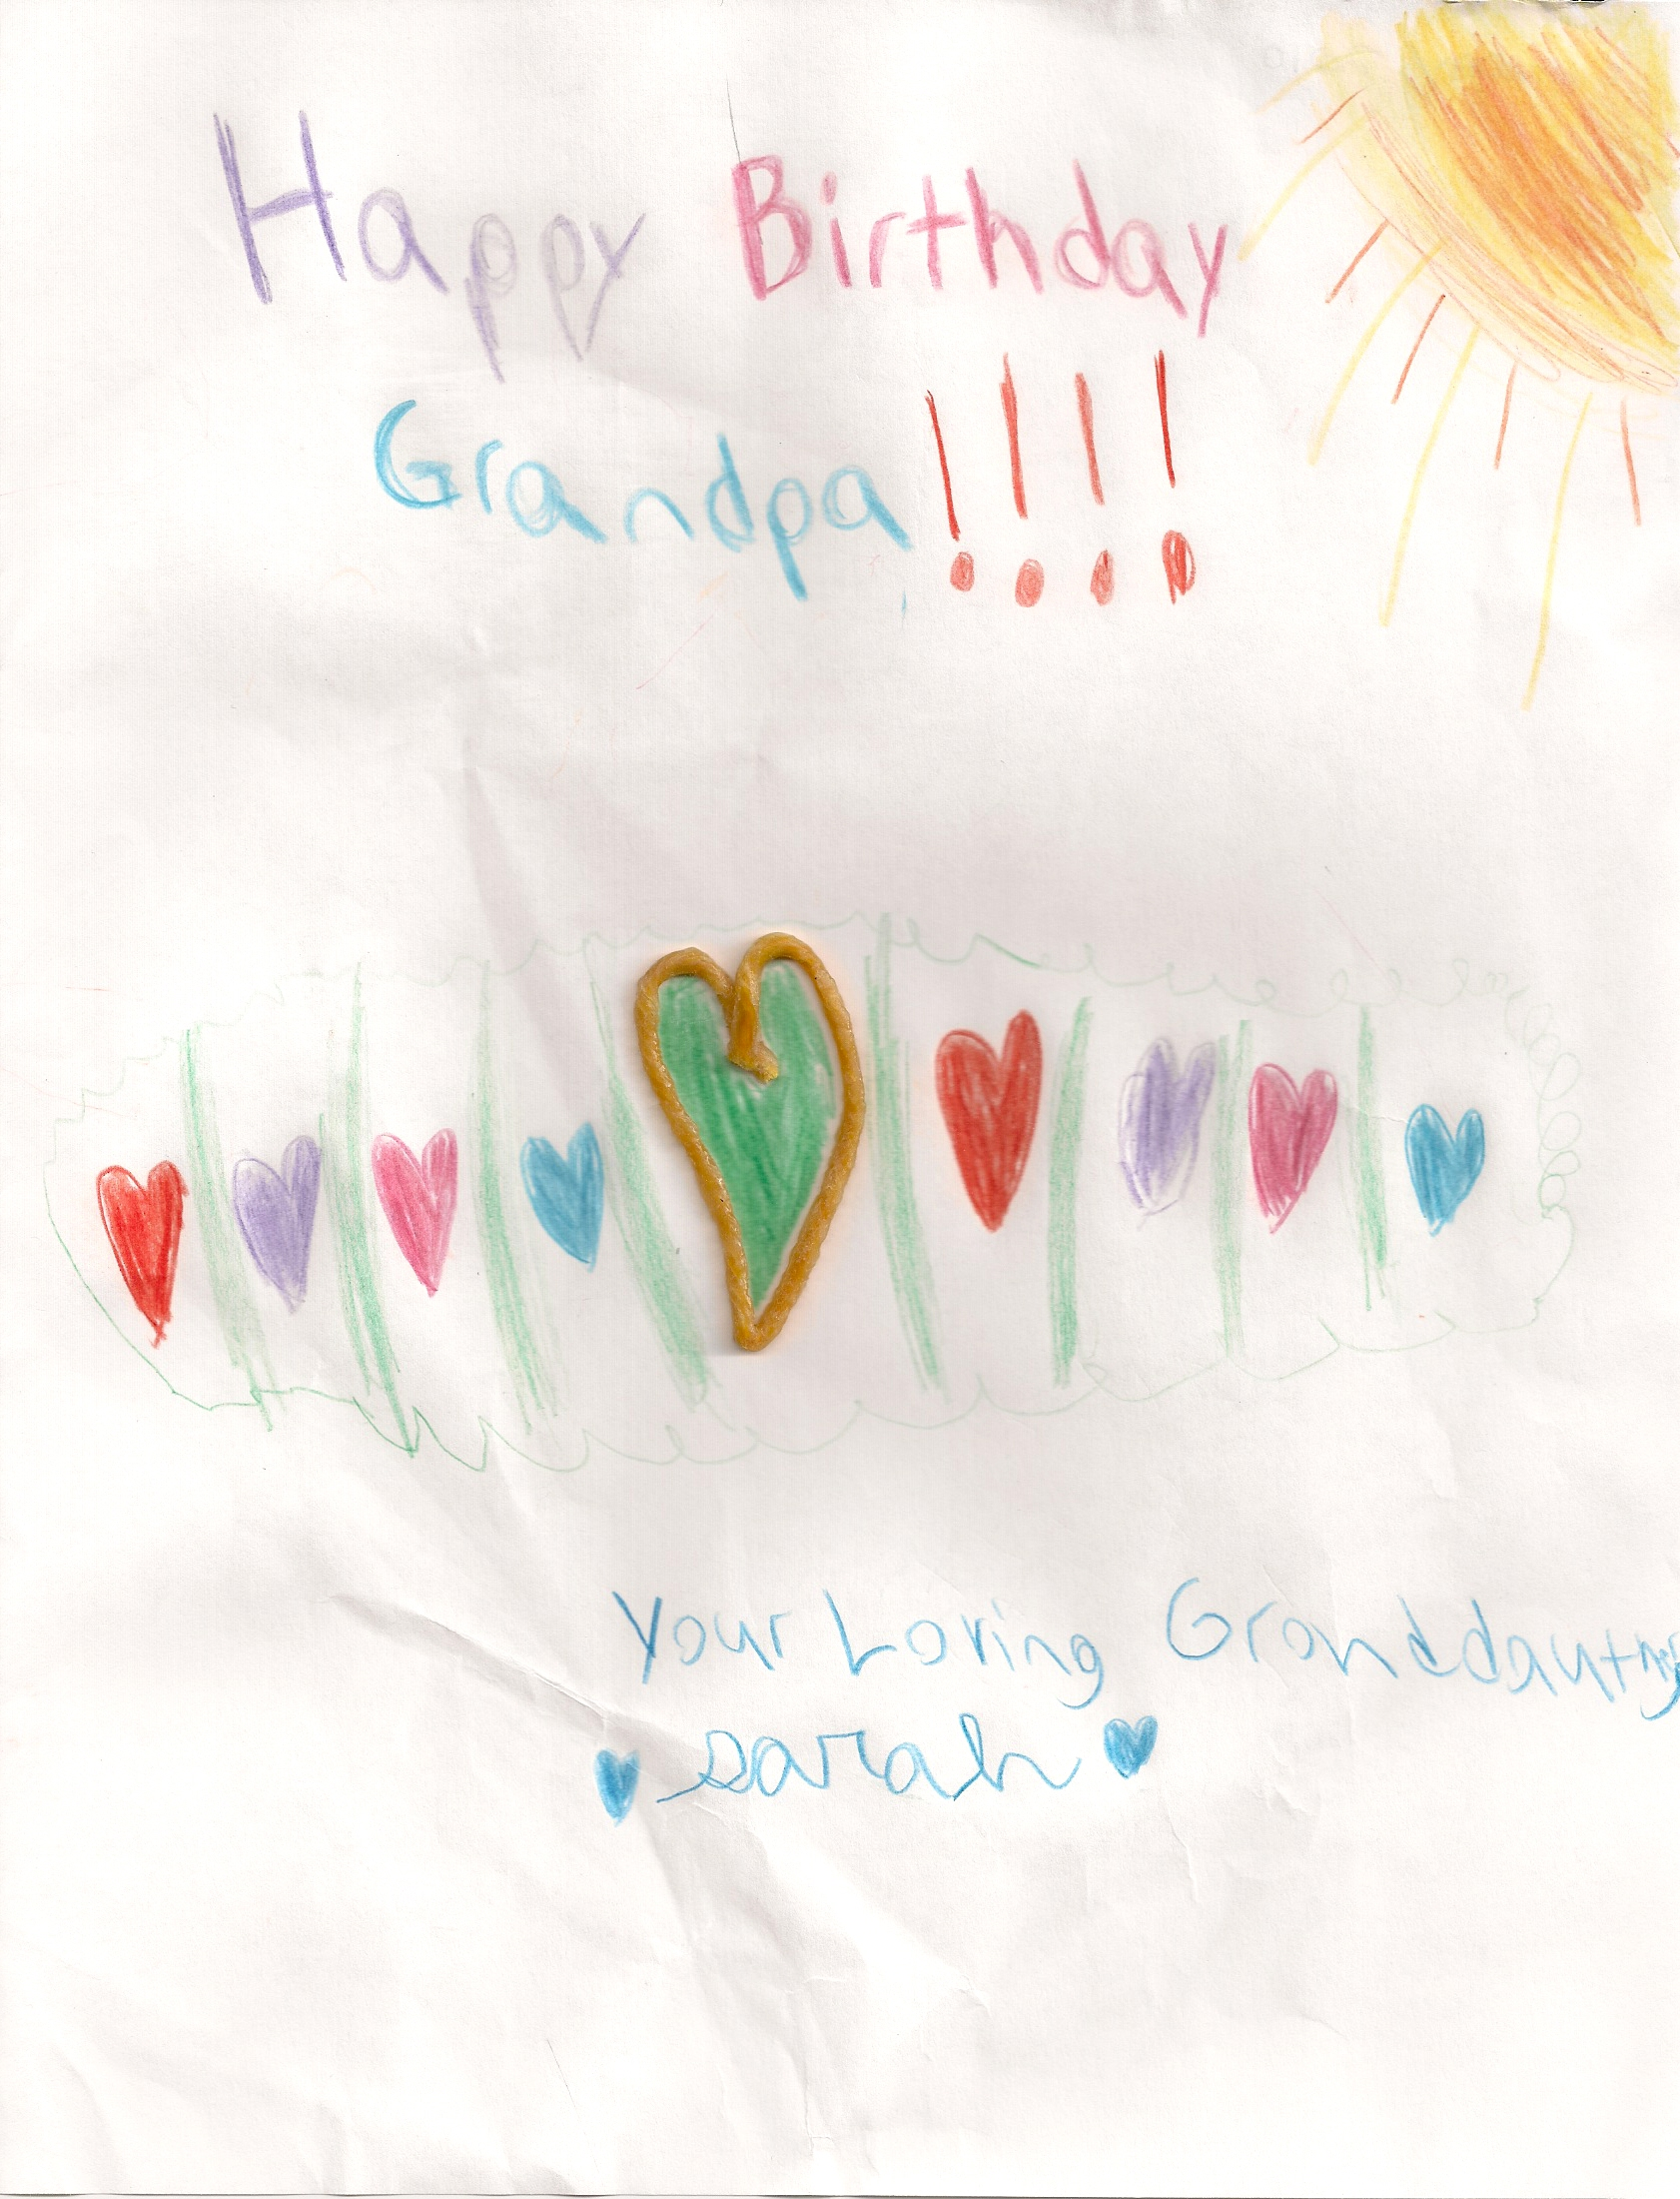 Sarah's Birthday Card to Granpa, 2010